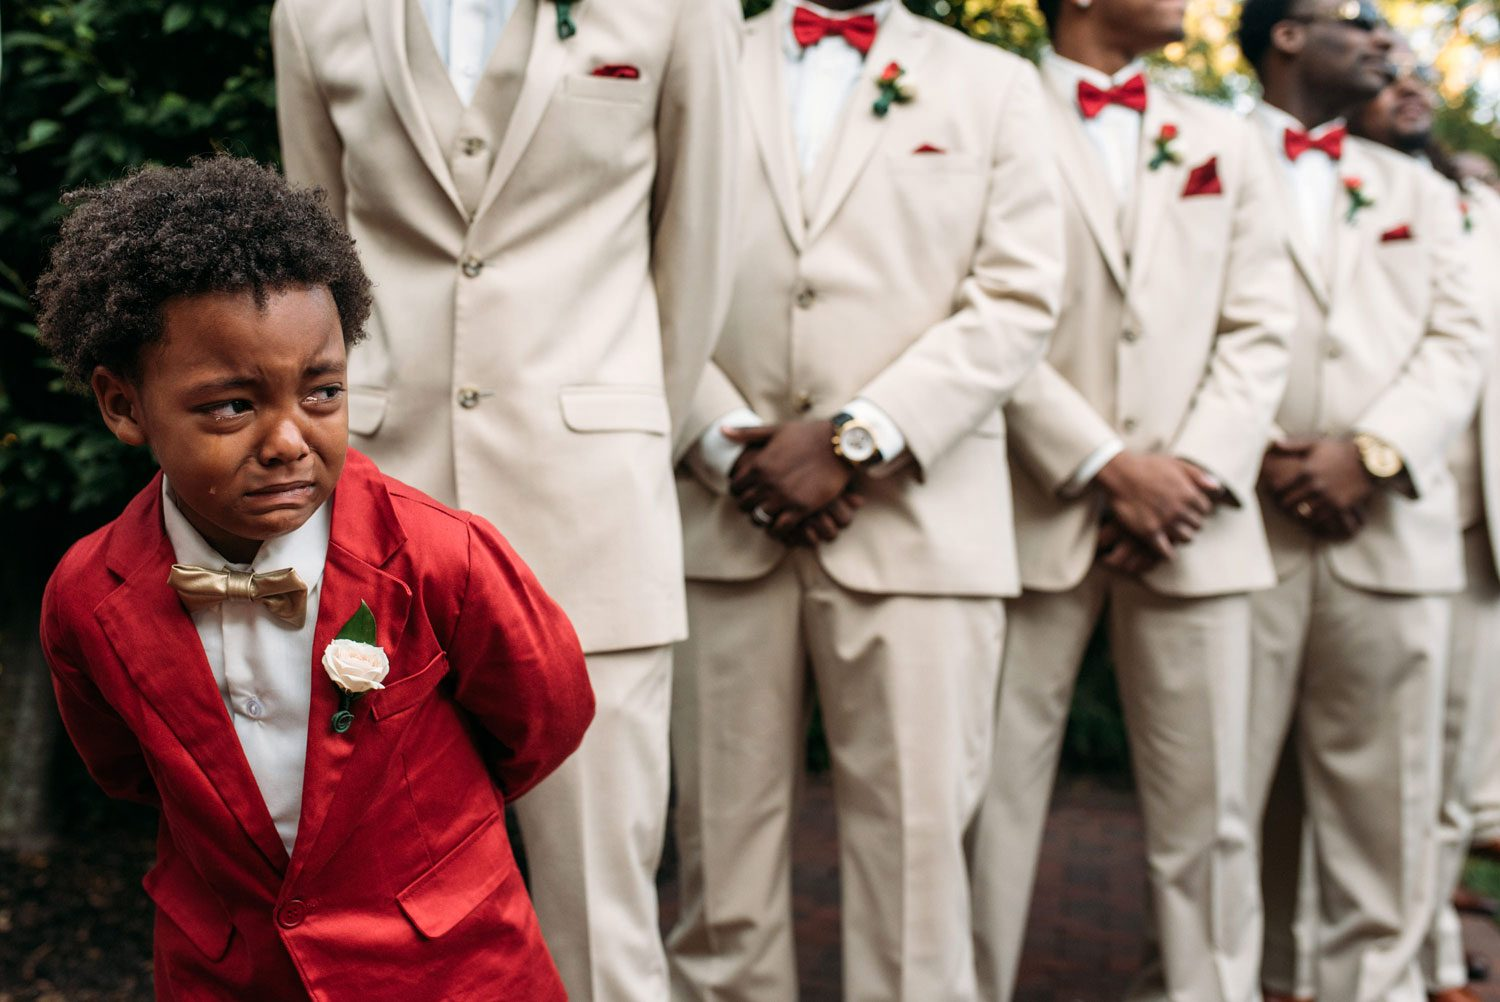 Boy crying mom wedding photographer